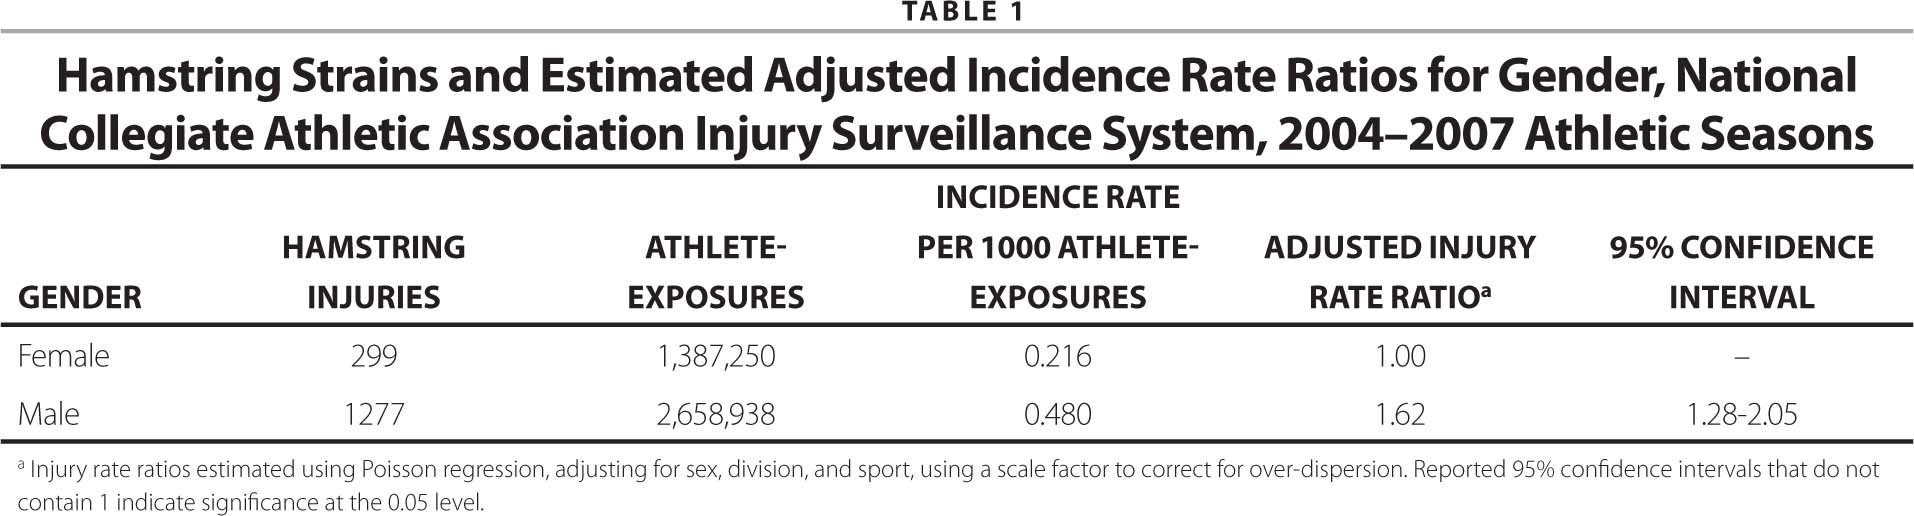 Hamstring Strains and Estimated Adjusted Incidence Rate Ratios for Gender, National Collegiate Athletic Association Injury Surveillance System, 2004–2007 Athletic Seasons